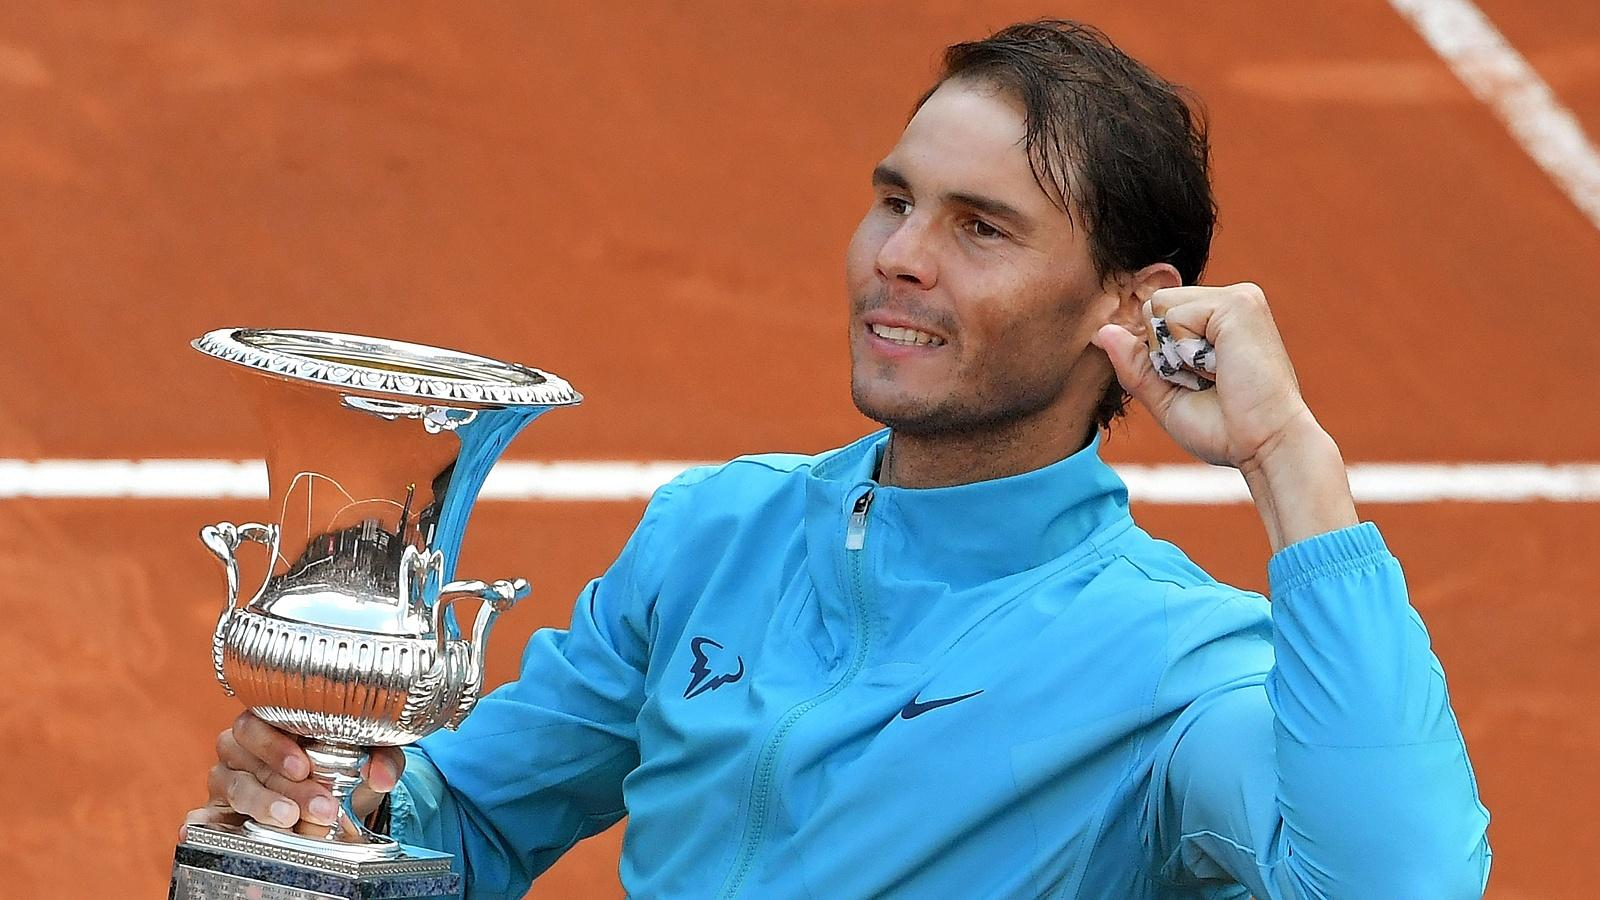 French Open Nadal Halep